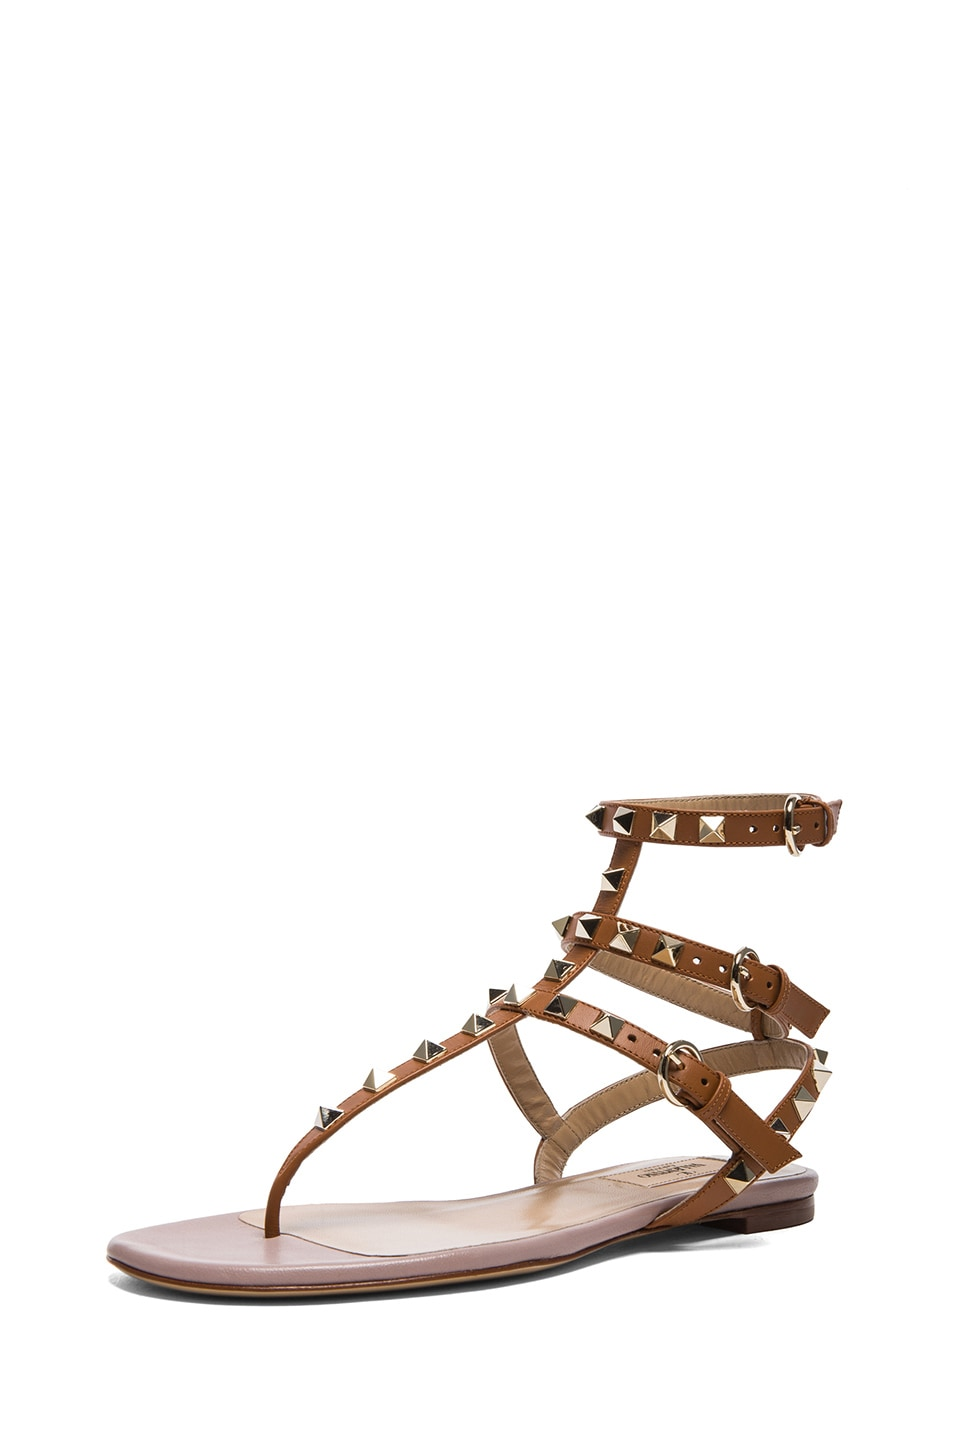 Image 2 of Valentino Rockstud Gladiator Leather Sandals T.05 in Light Cuir